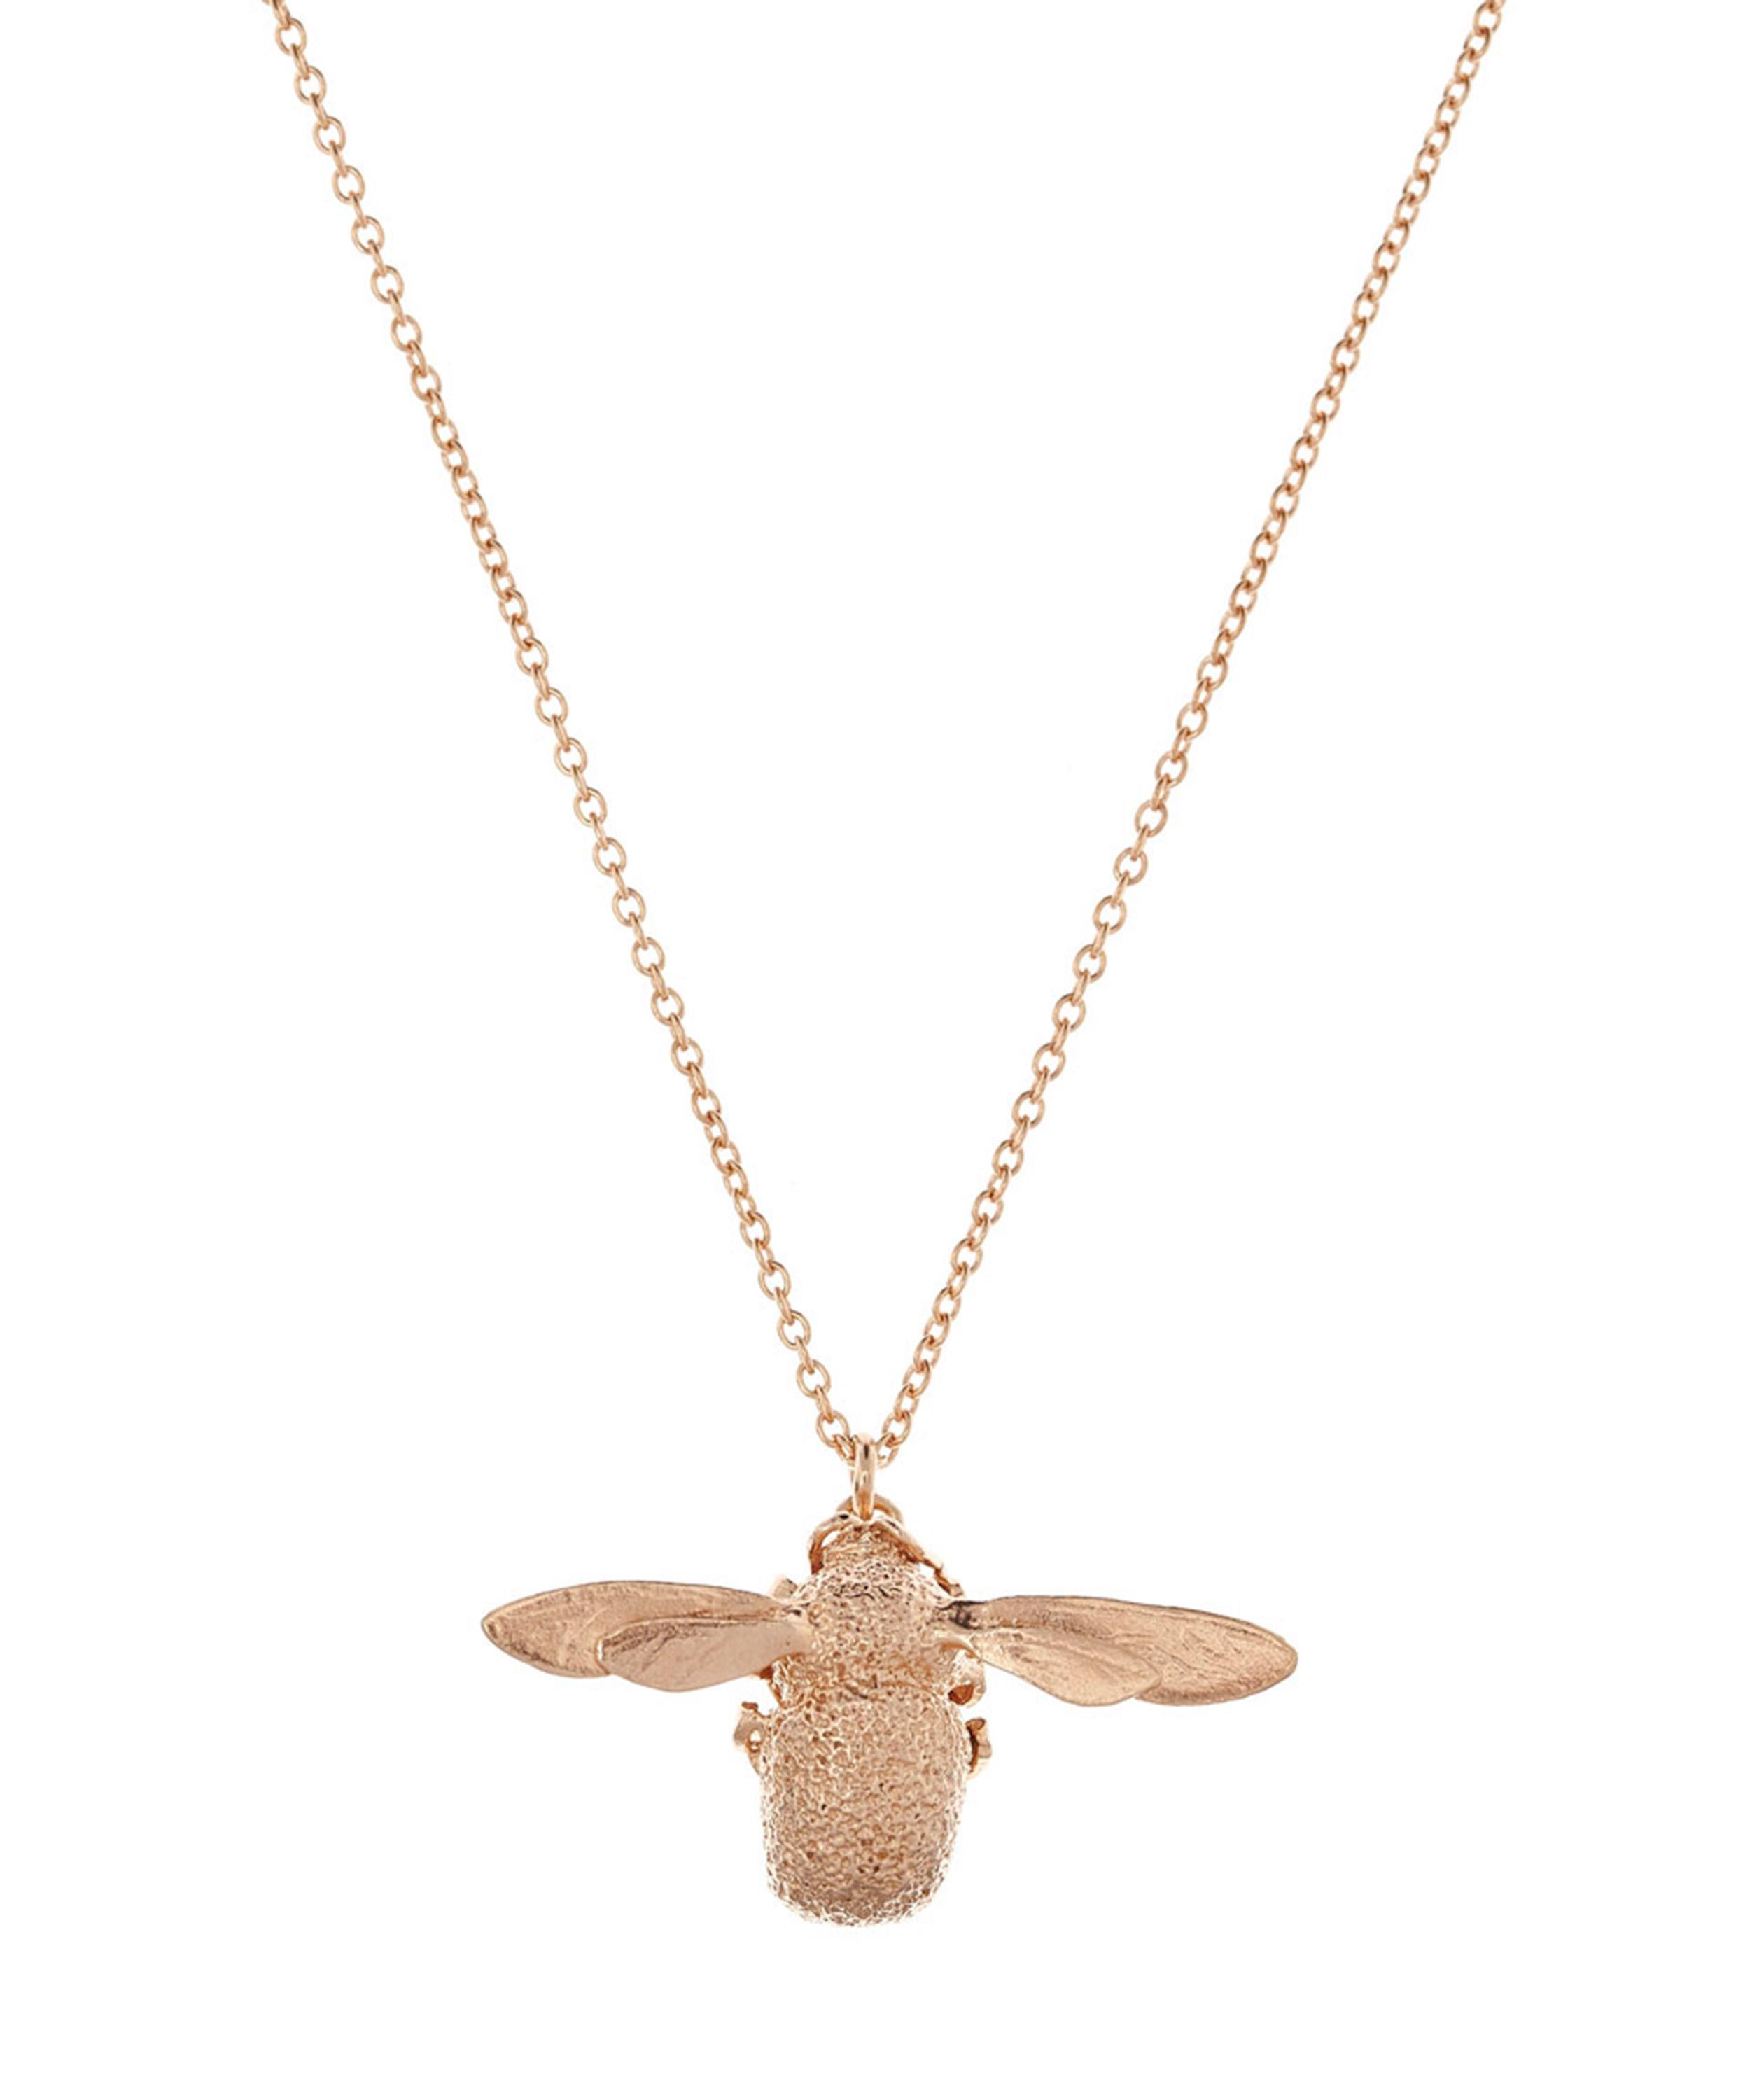 Gold Plated Sterling Silver (Vermeil) Bumble Bee Pendant Necklace with Intricate Details wxqBCUlqX